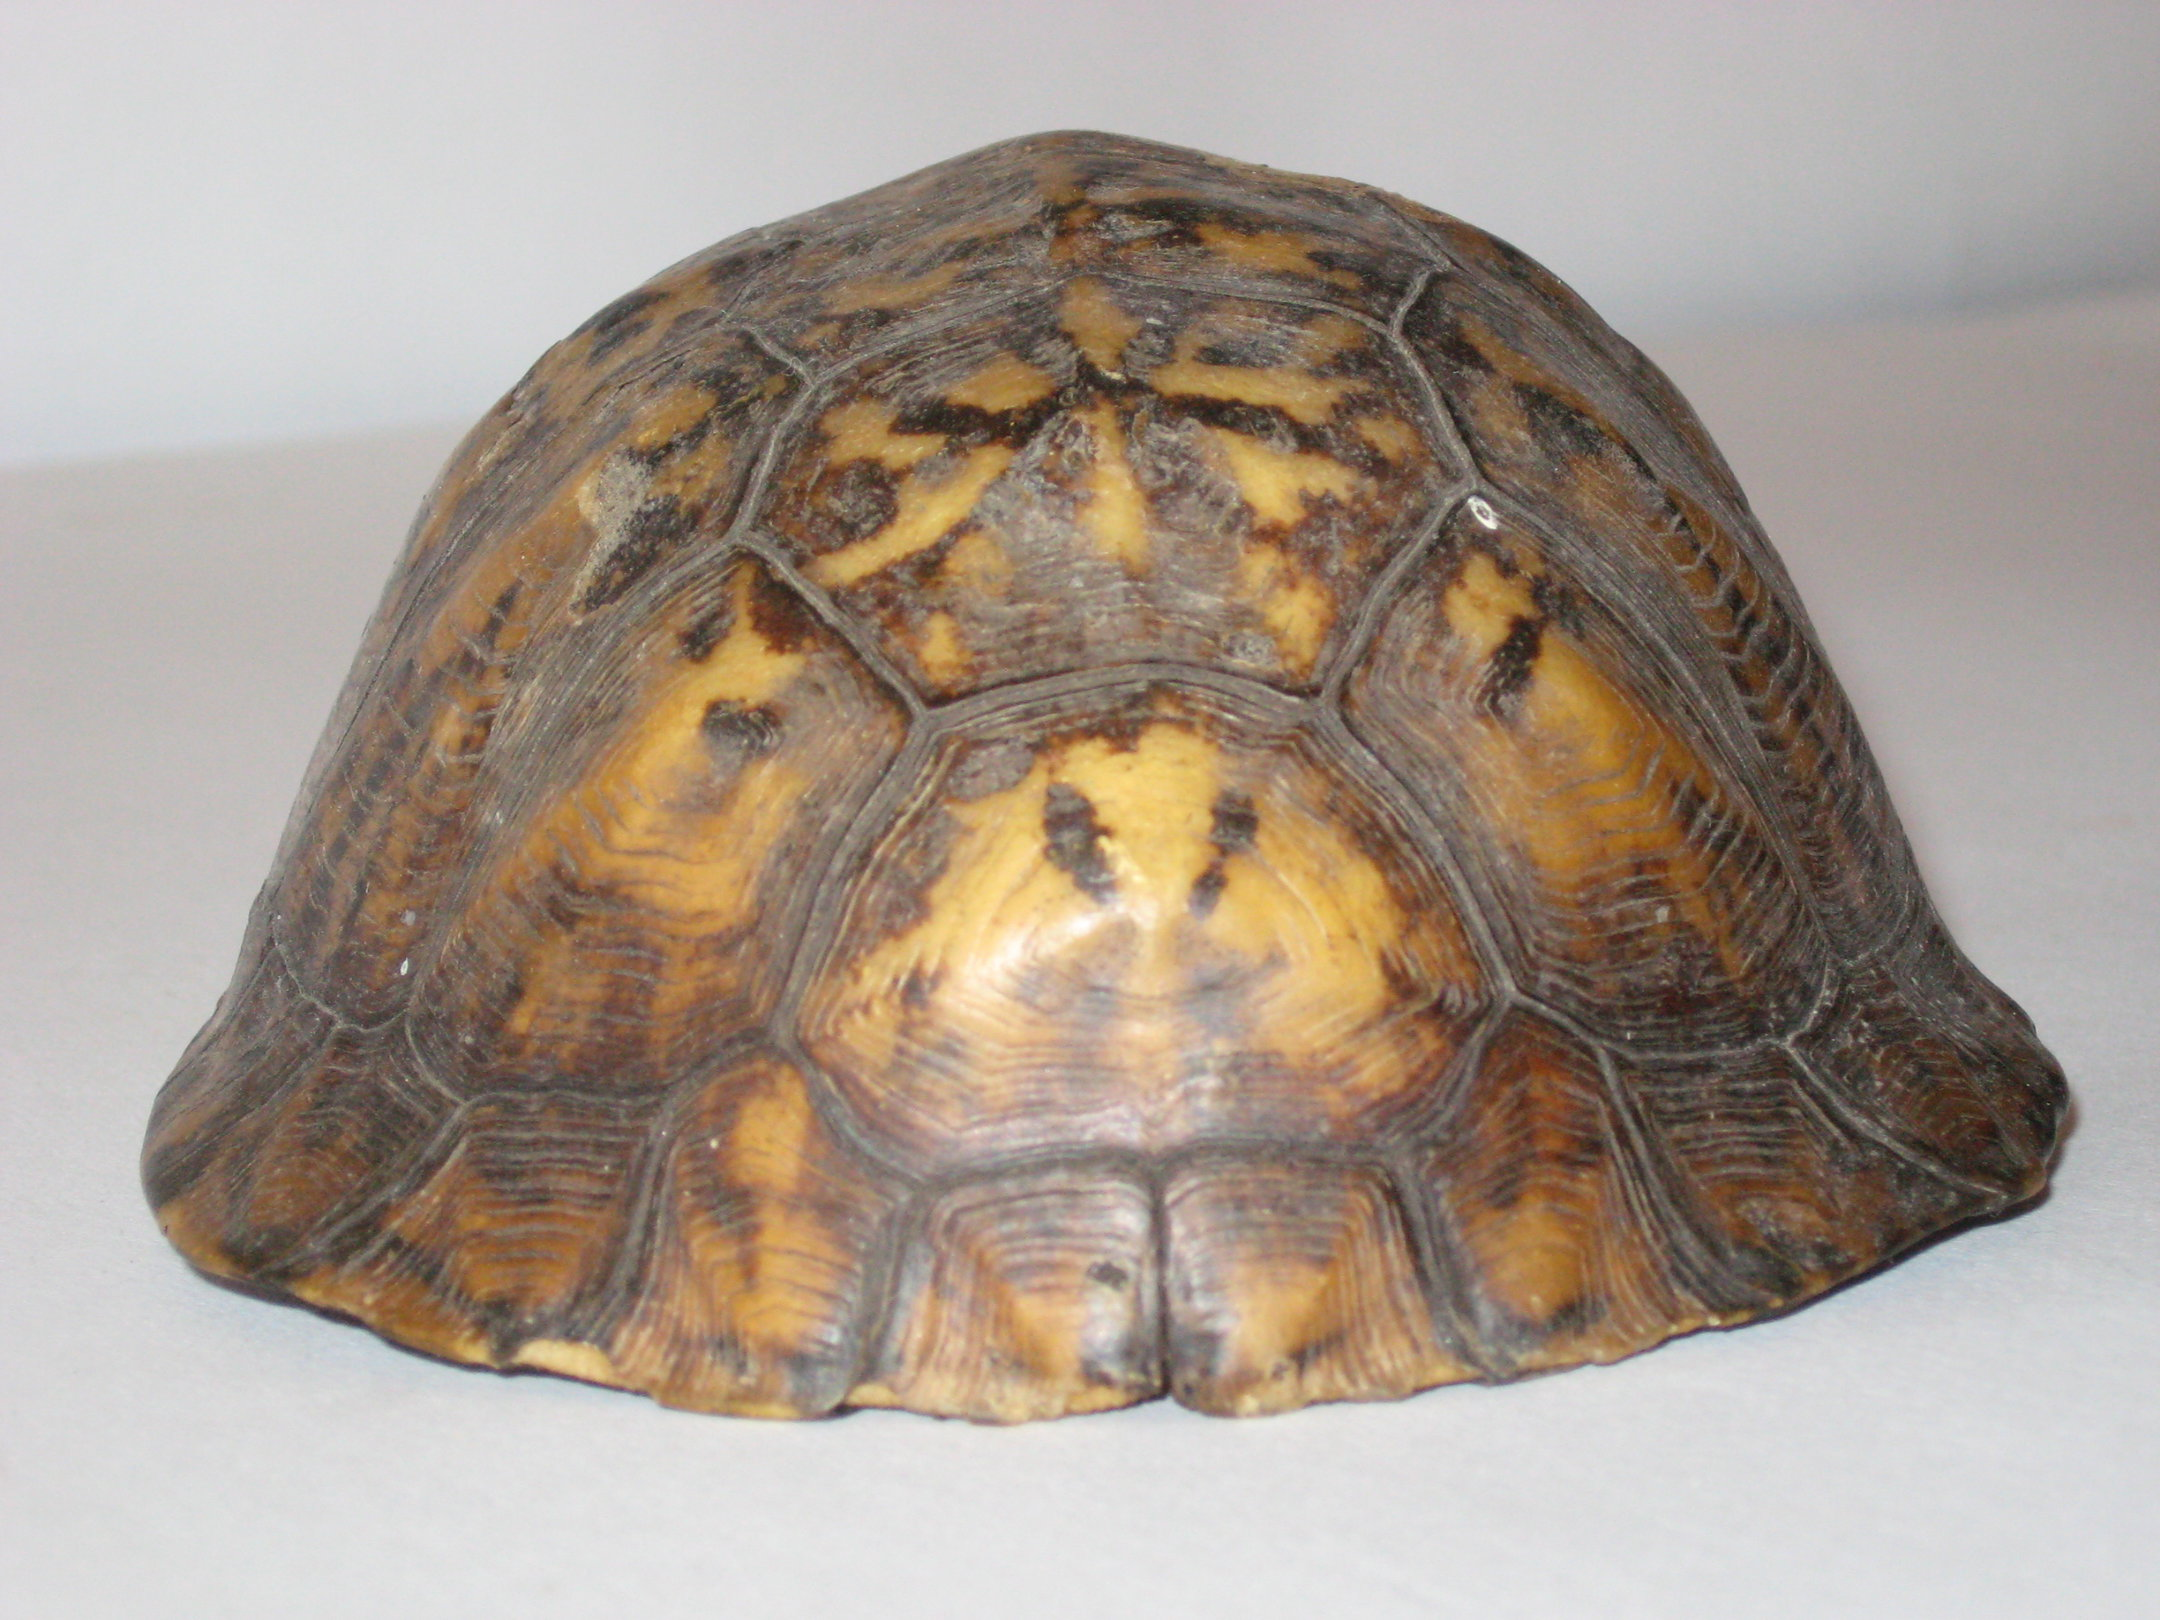 Tortoise Shell 2 by markopolio stock 2160x1620